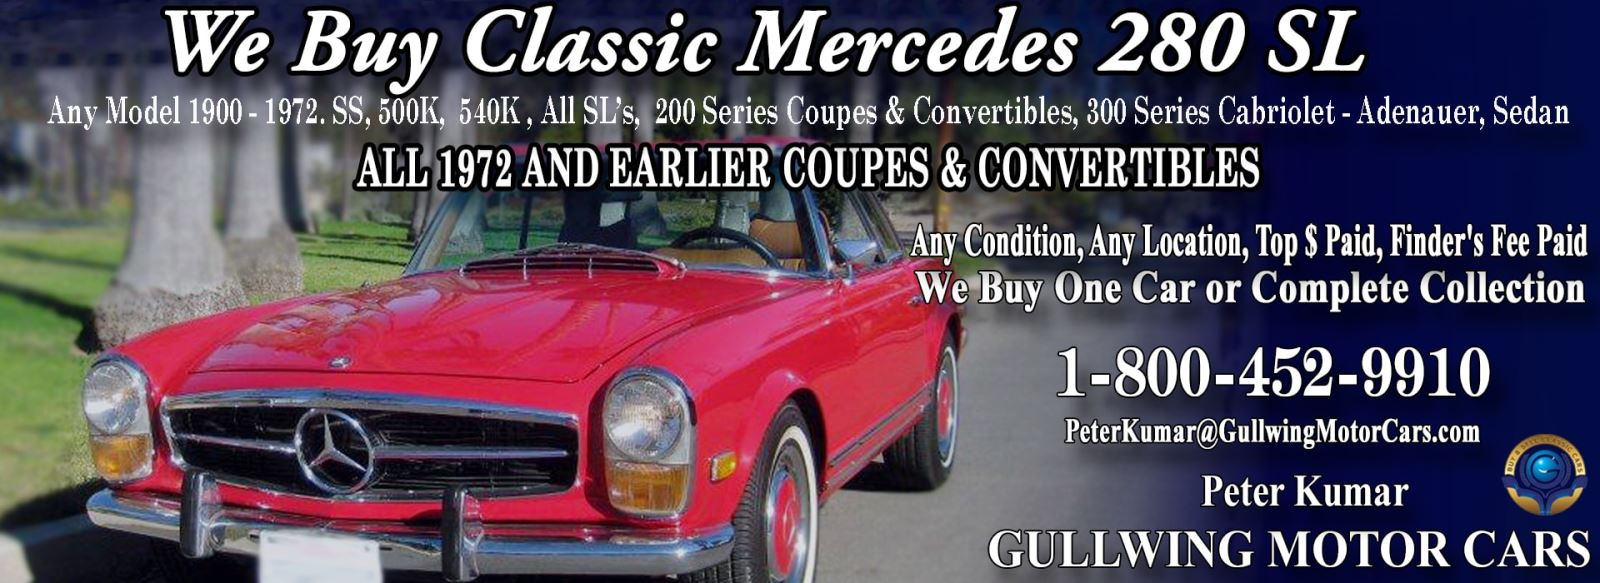 Classic Mercedes 280SL for sale, we buy vintage Mercedes 280SL. Call Peter Kumar. Gullwing Motor